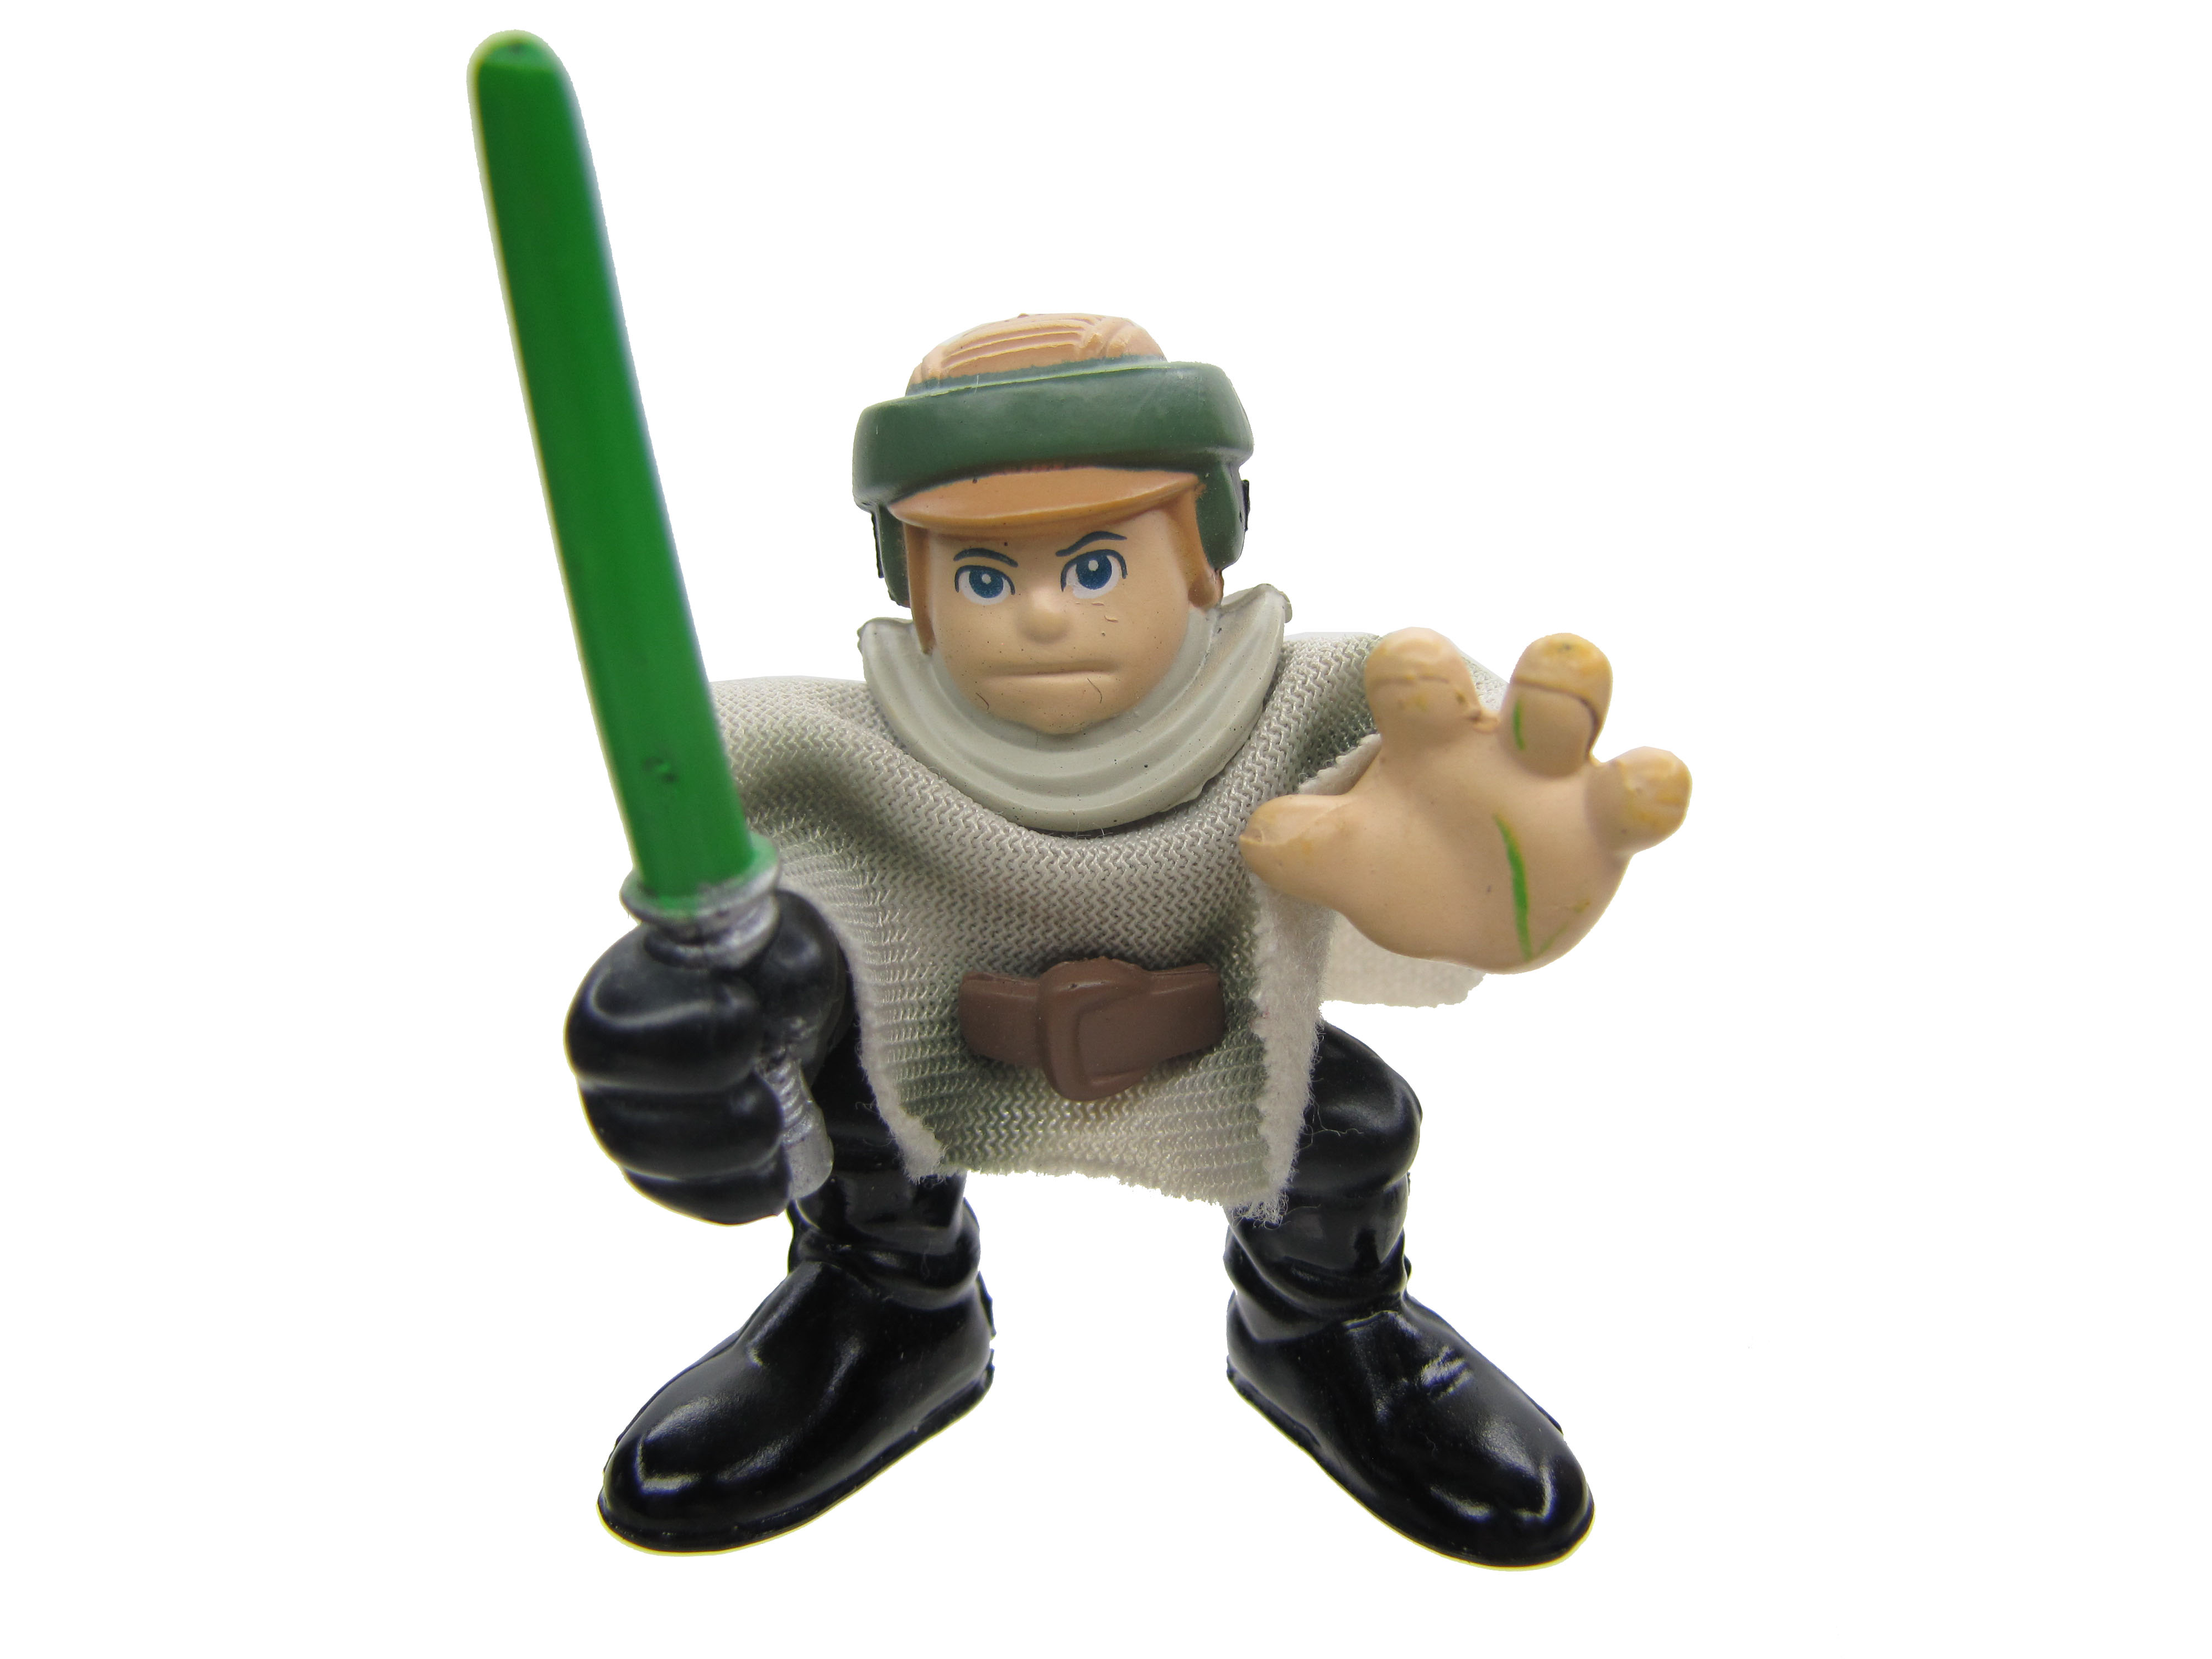 Star Wars Galactic Heroes SPEEDER BIKE CHASE LUKE SKYWALKER